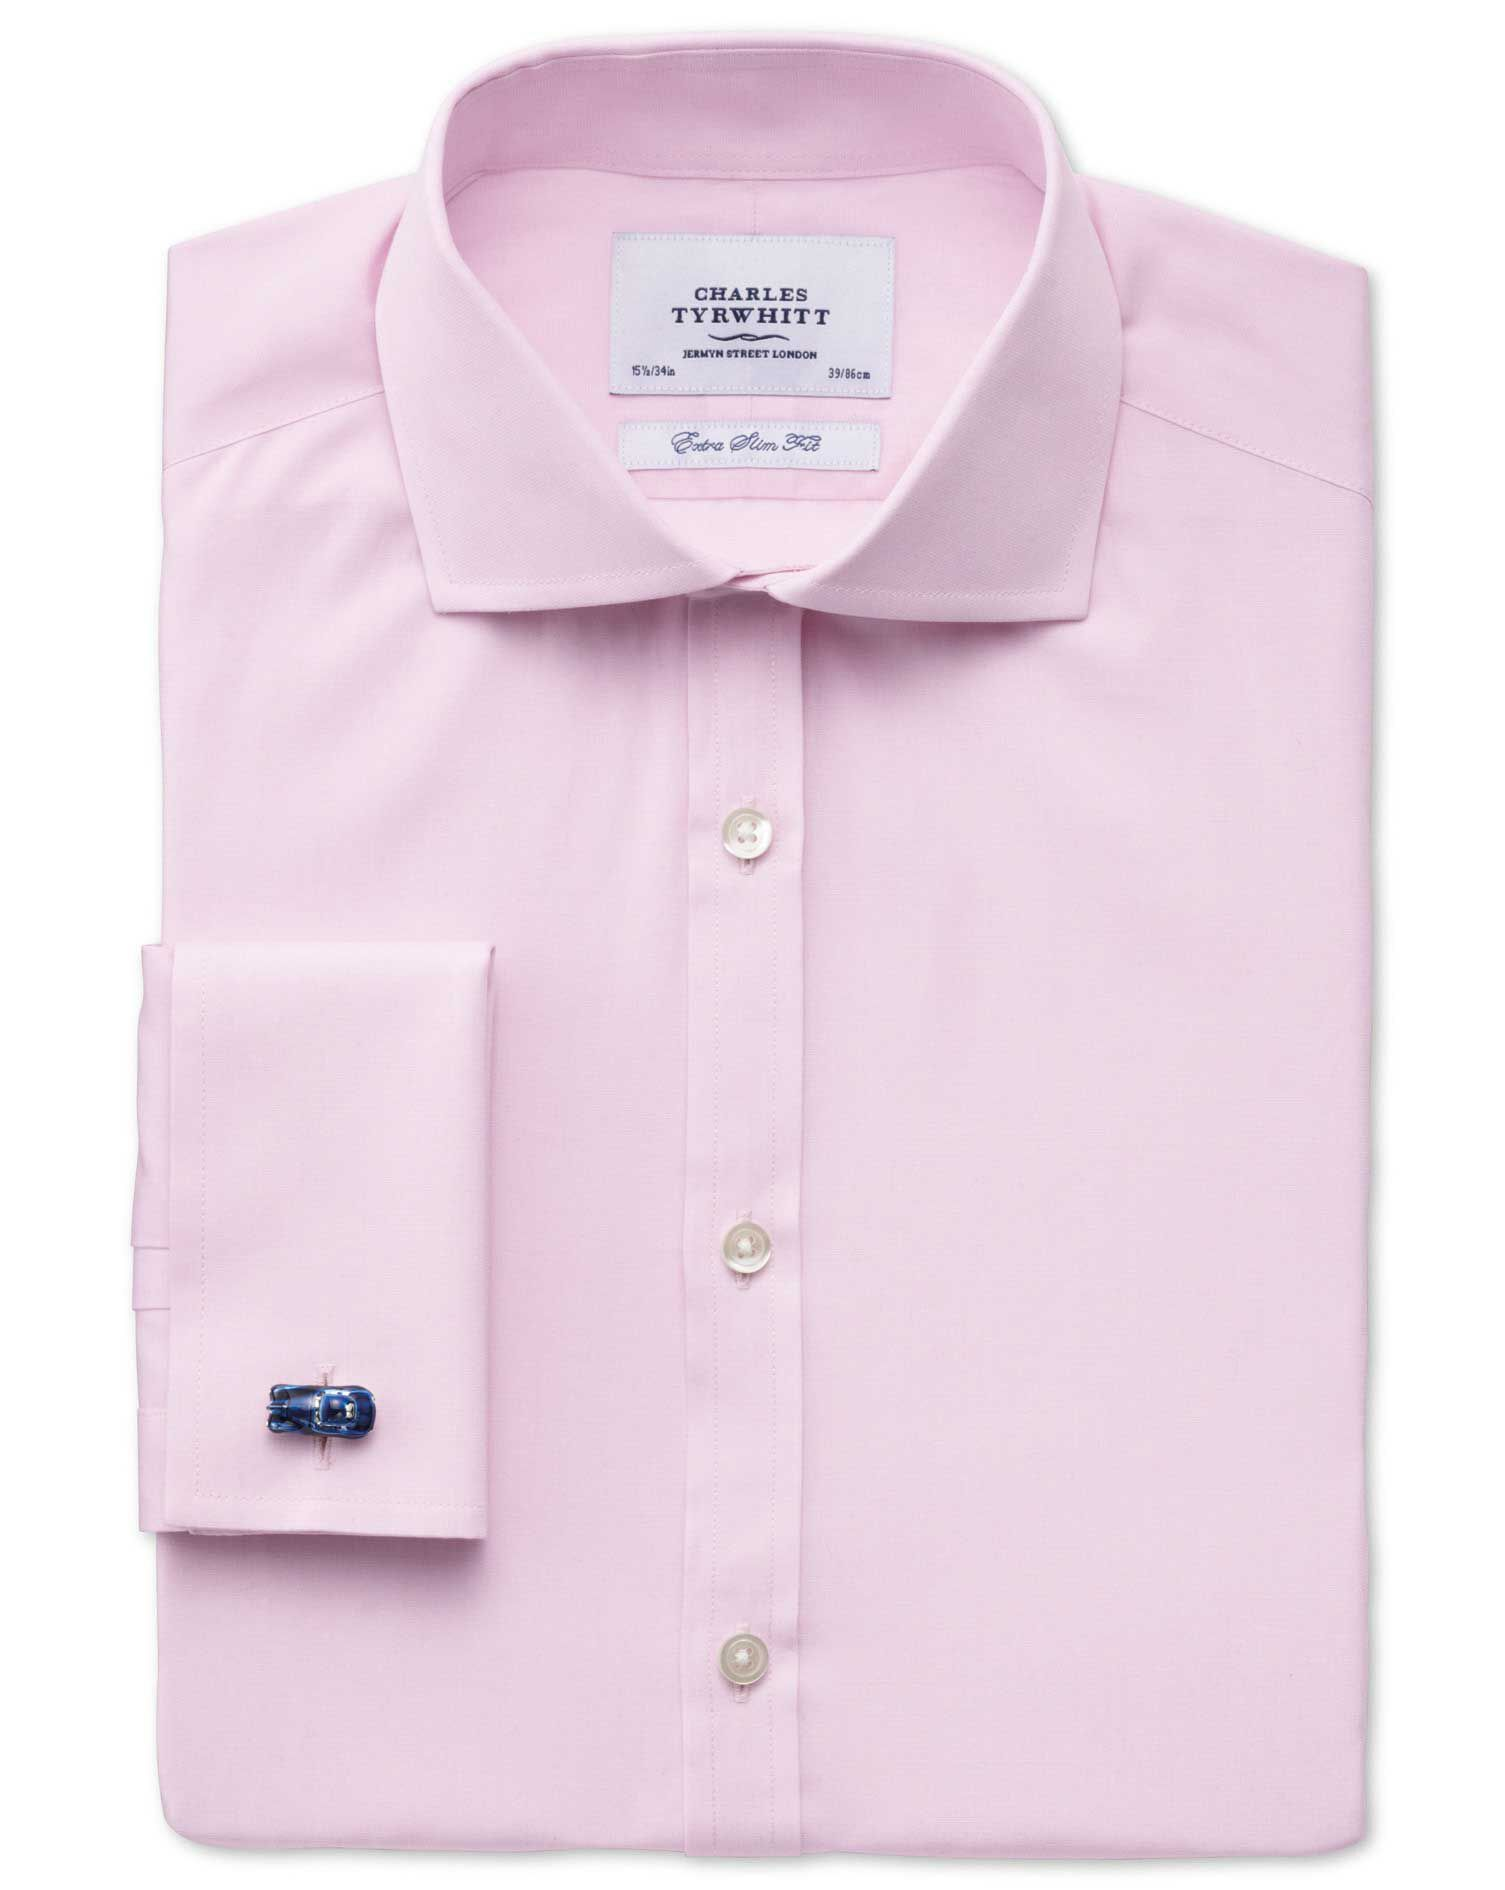 Extra Slim Fit Cutaway Collar End-On-End Pink Cotton Formal Shirt Single Cuff Size 17.5/36 by Charle